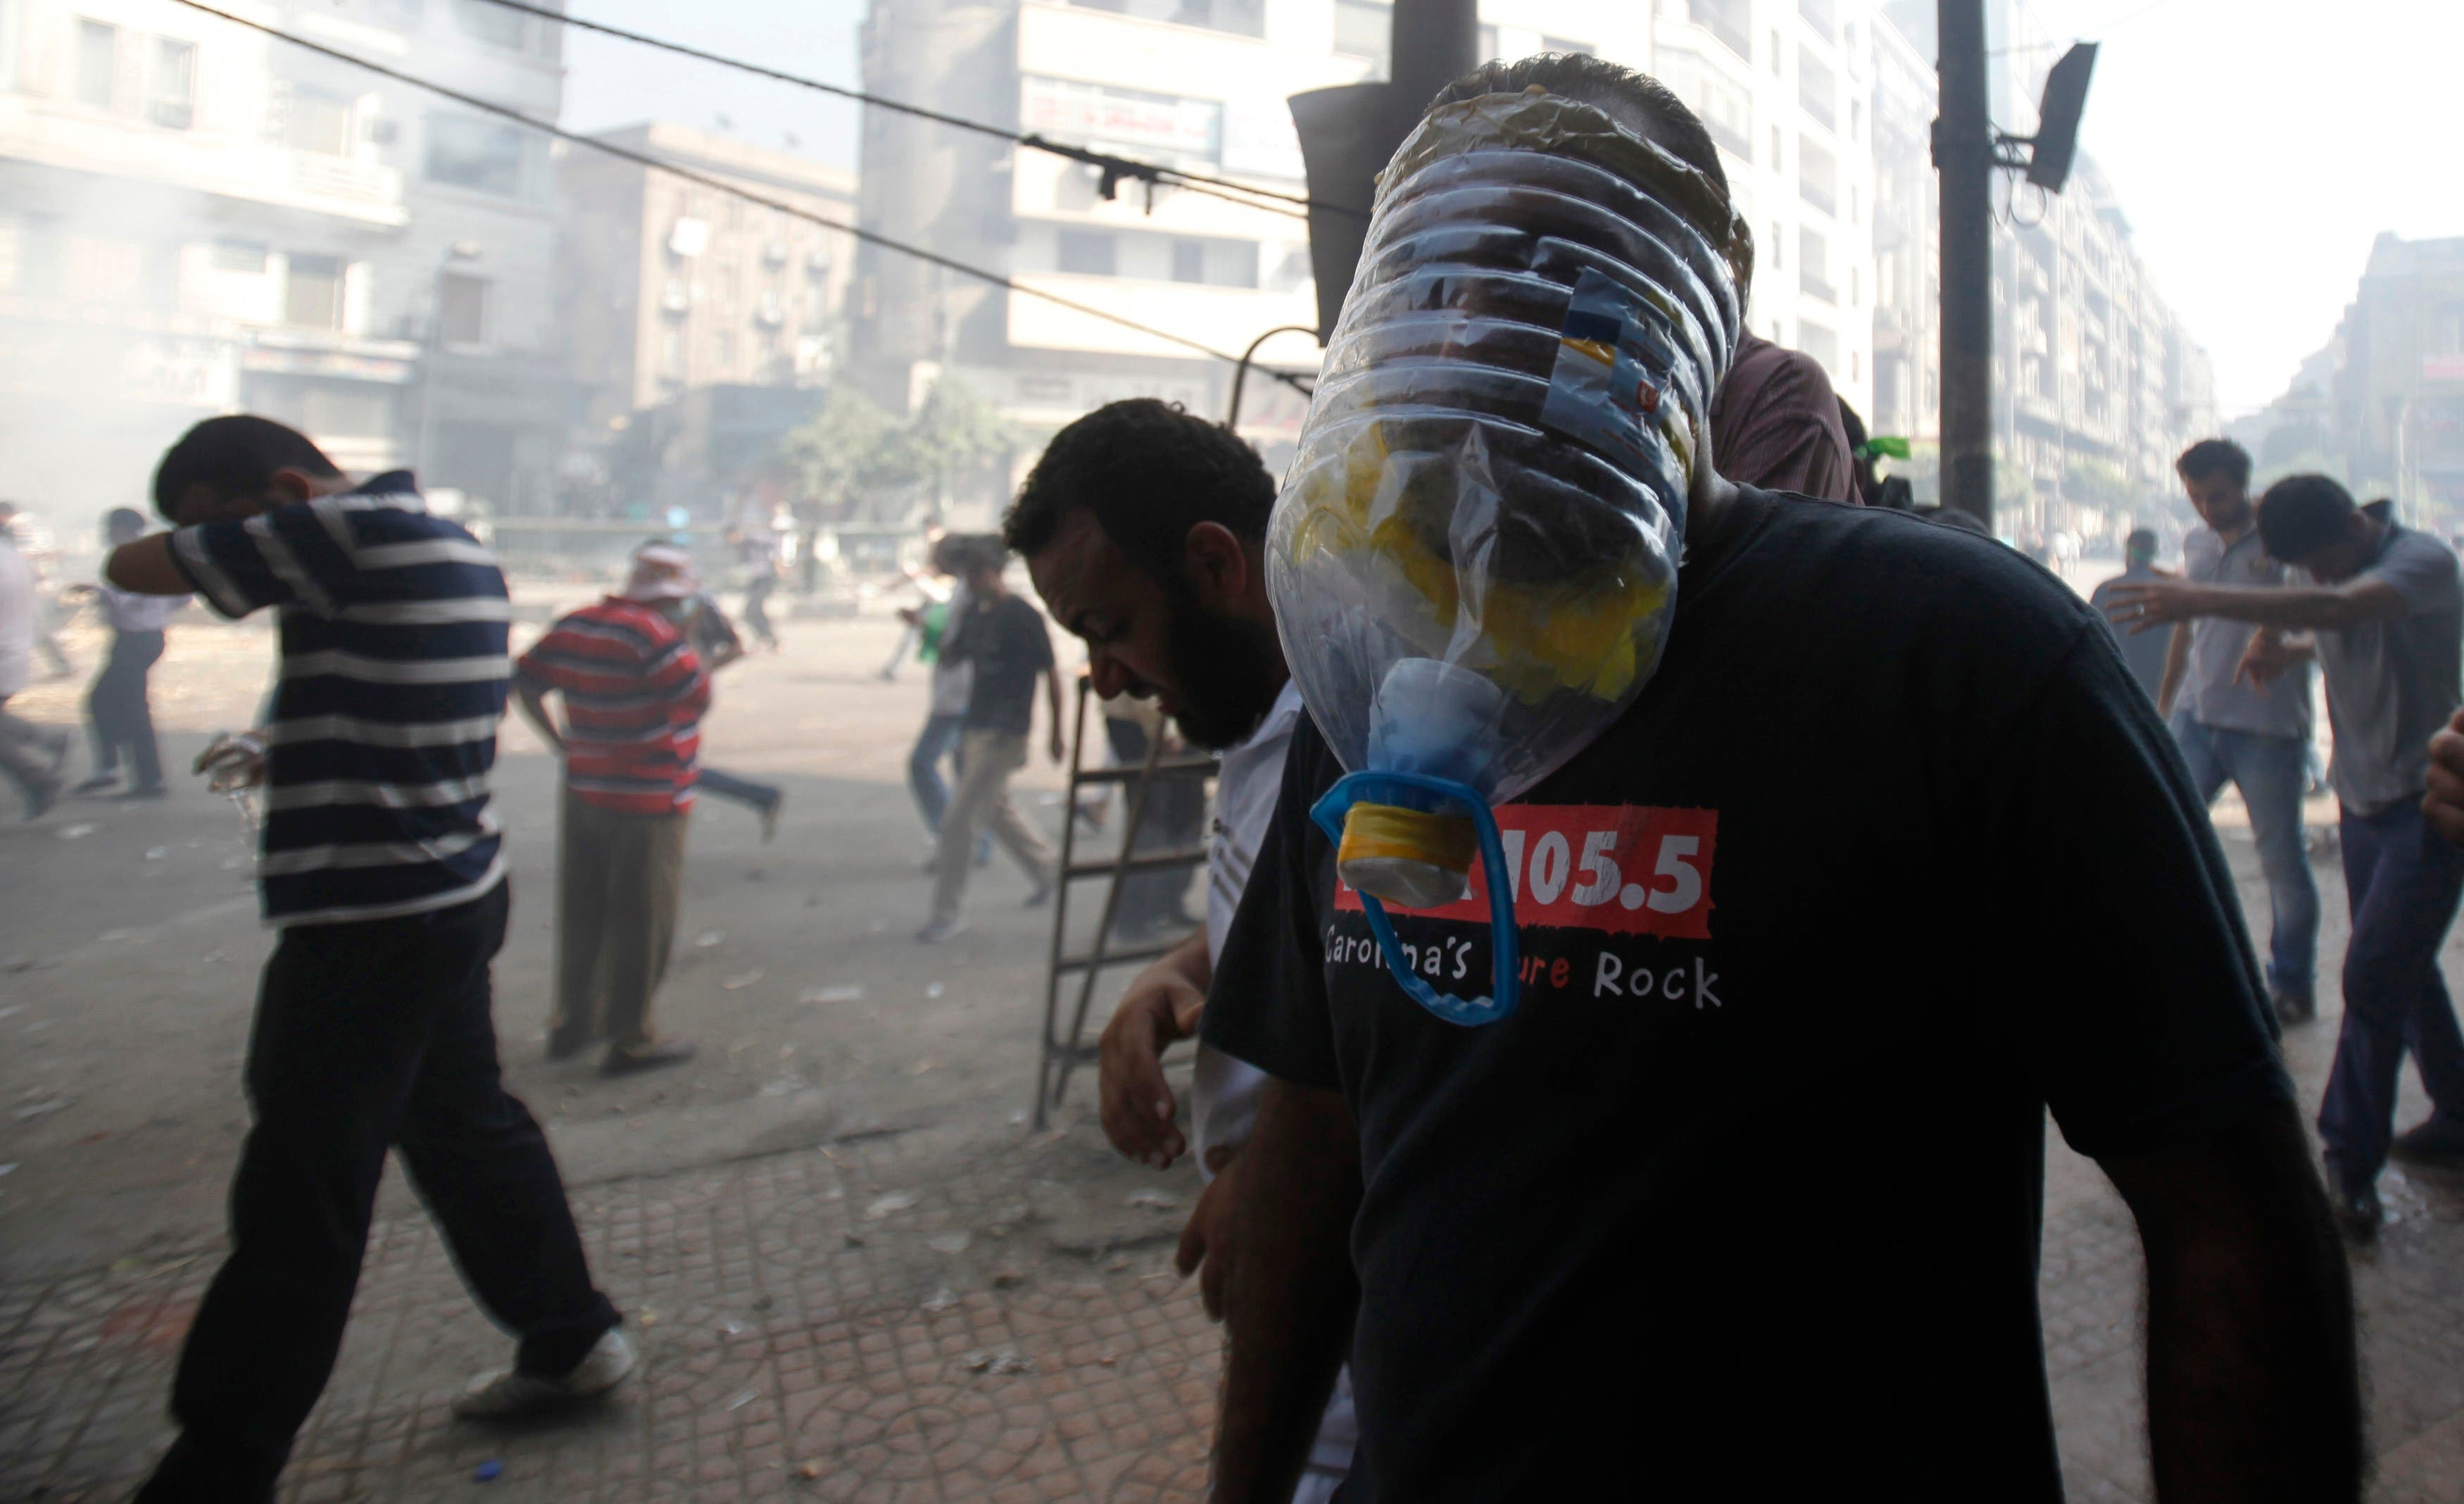 A member of the Muslim Brotherhood and supporter of ousted Egyptian President Mohamed Mursi wears a makeshift gas mask as others run away from shooting during clashes in front of Azbkya police station during clashes at Ramses Square in Cairo August 16, 2013. (Reuters)